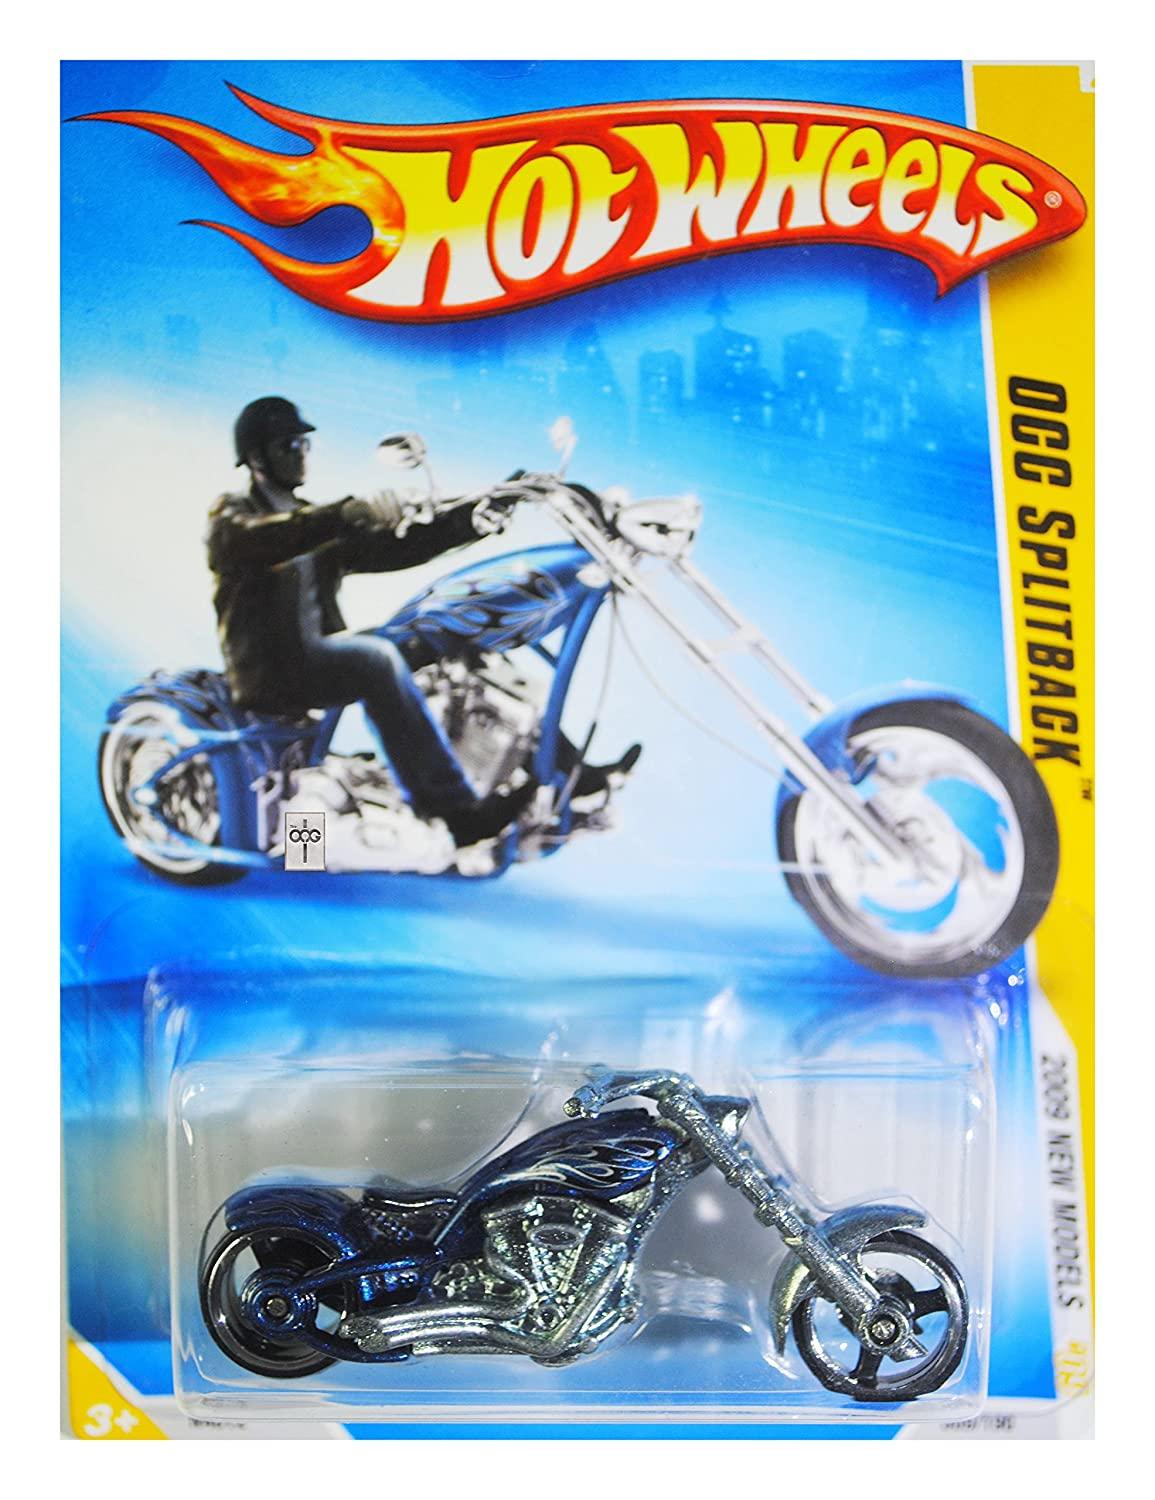 Hw hot wheels 2015 hw city 48 250 canyon carver police motorcycle - Amazon Com Hot Wheels 2009 New Models Blue Occ Splitback Cycle 09 Of 42 009 190 Toys Games